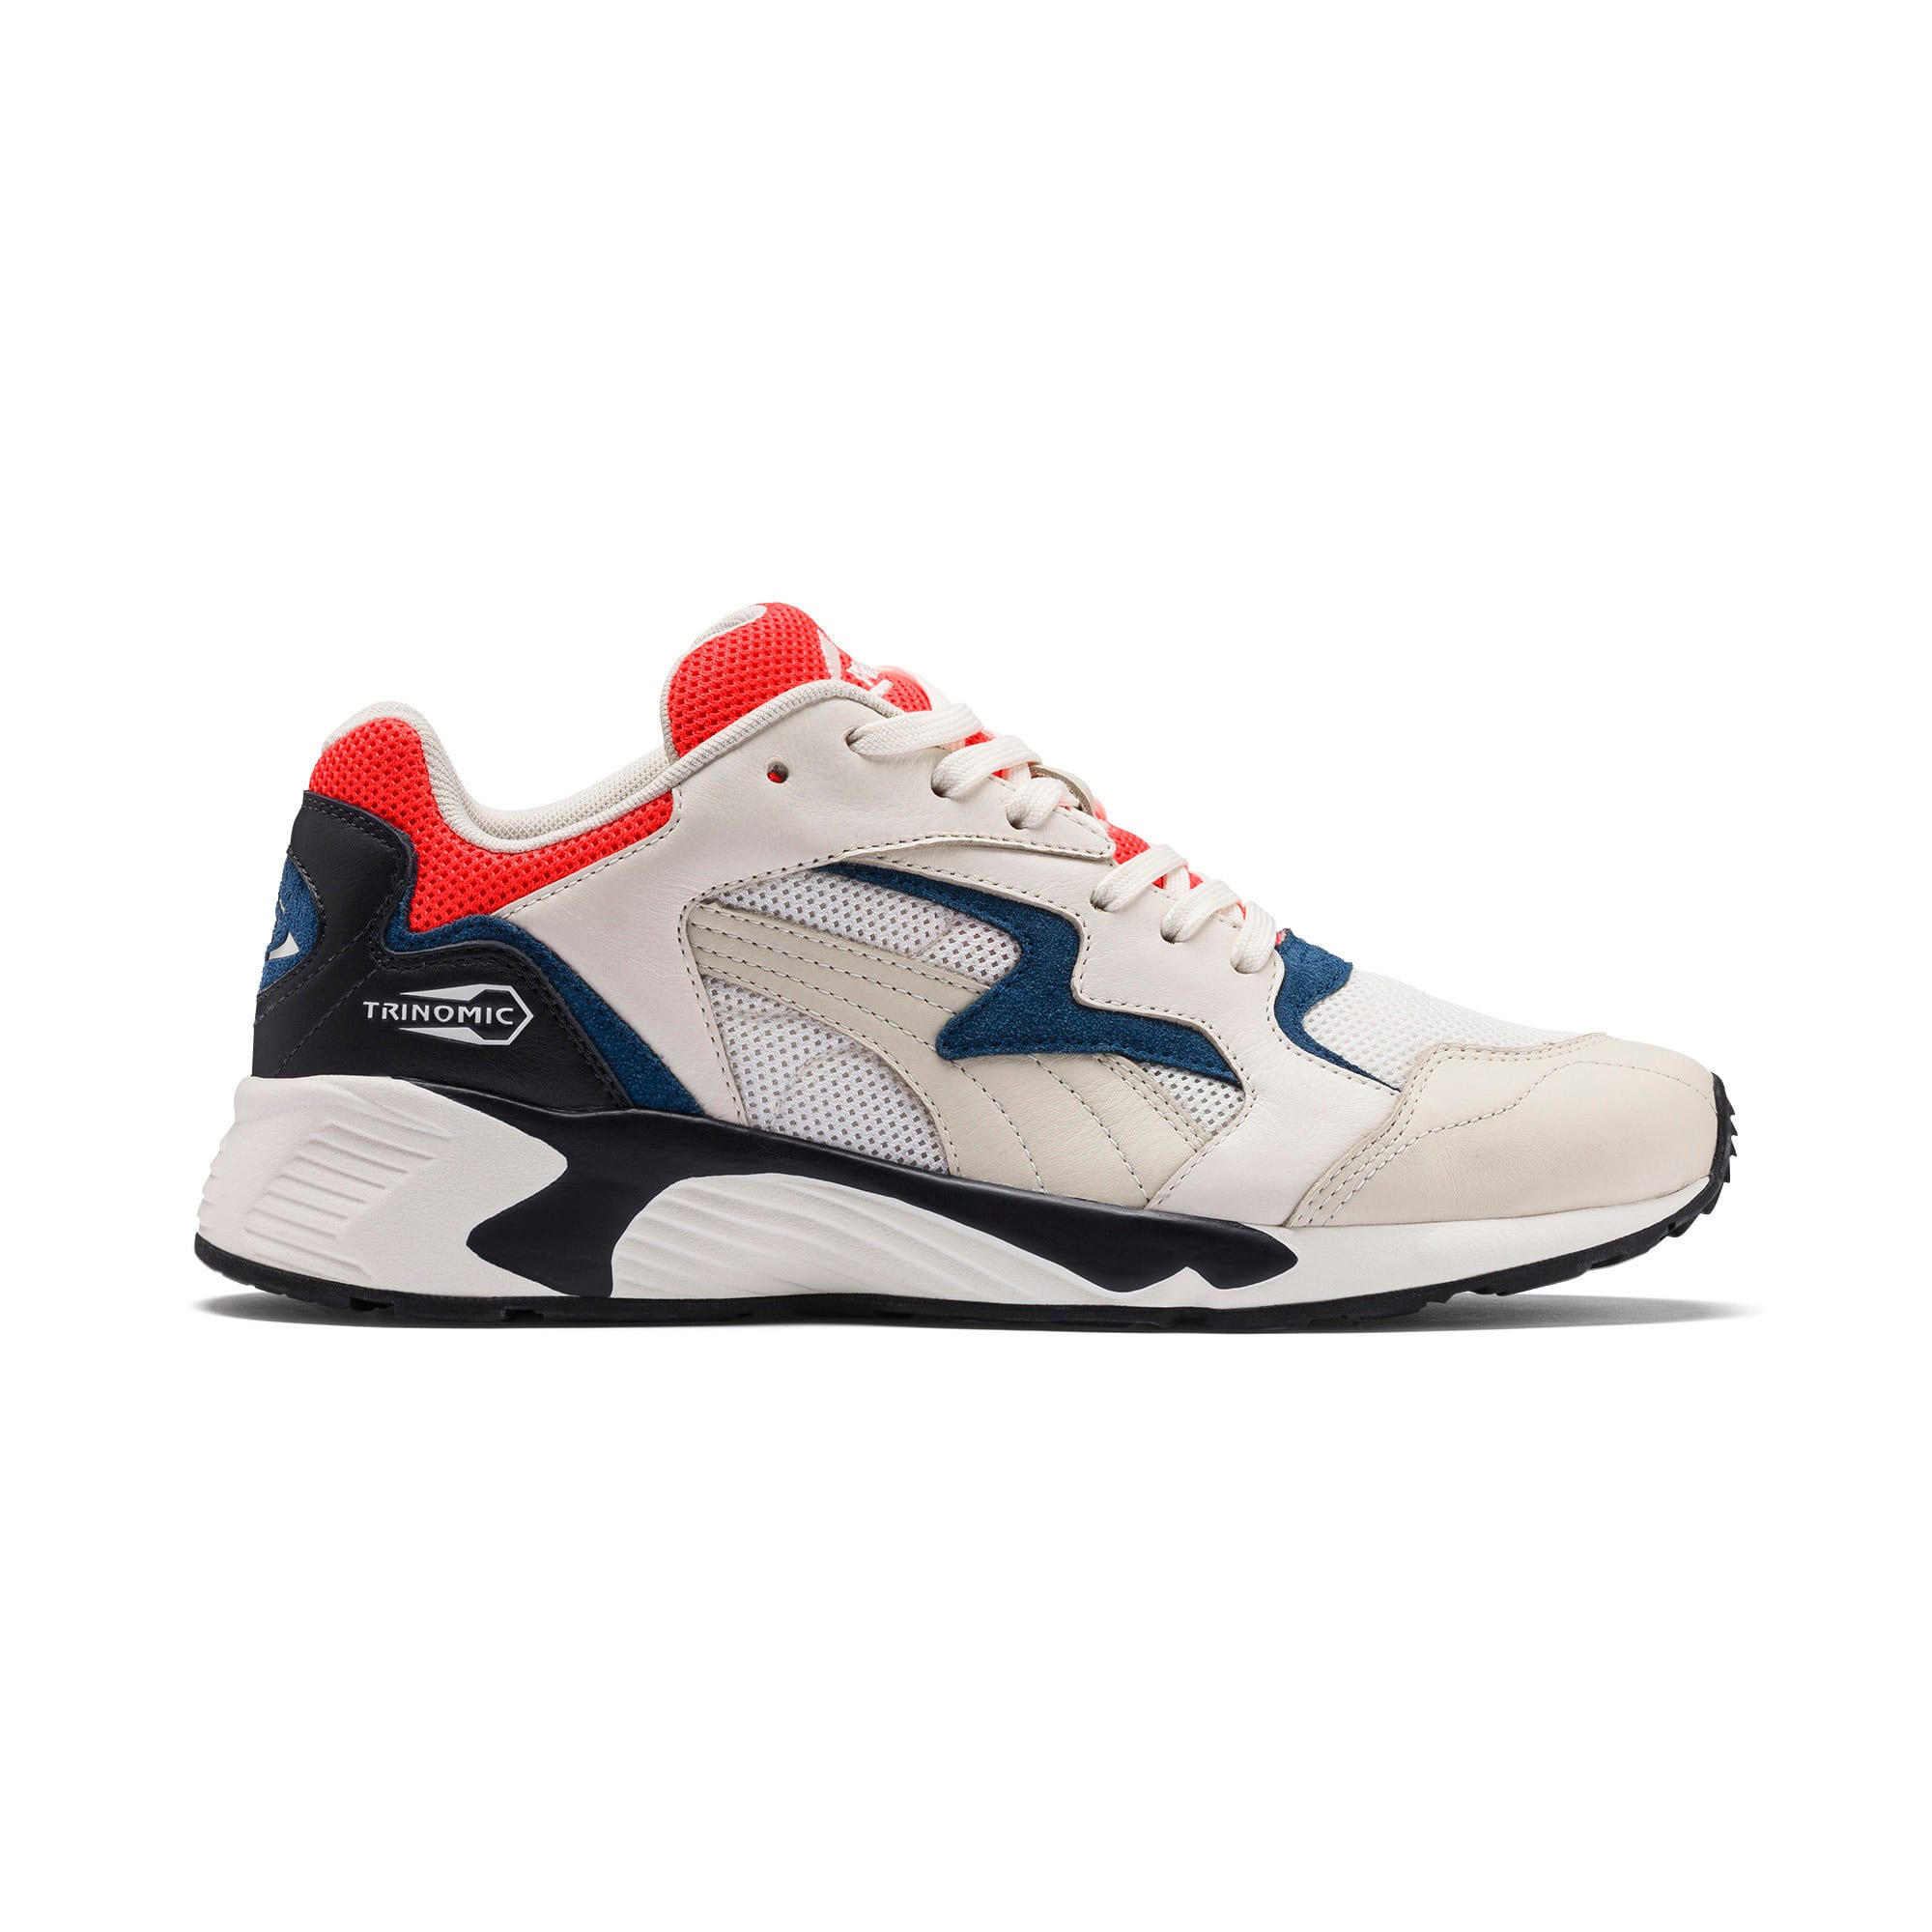 Thumbnail 5 of Prevail Classic Trainers, Whisper White-Nrgy Red, medium-IND